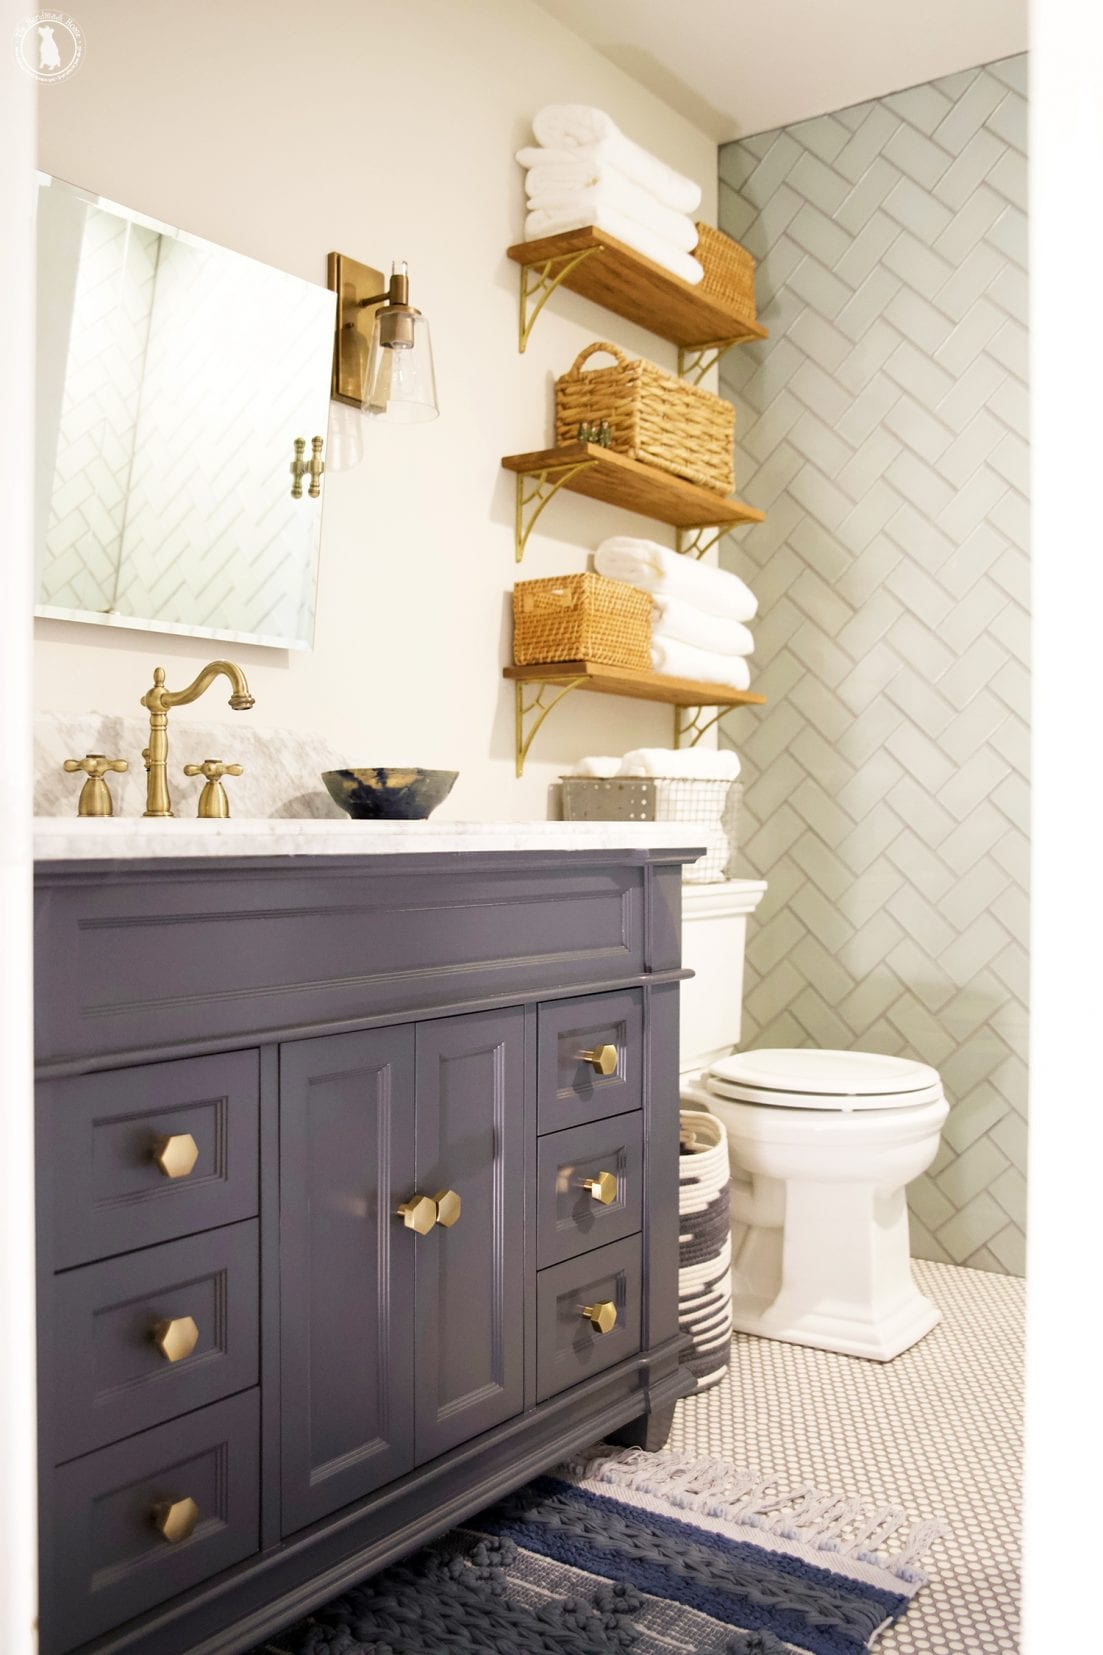 Be Sure To Check Out Wayfair For All Their Amazing Sources And All Things  Renovations!